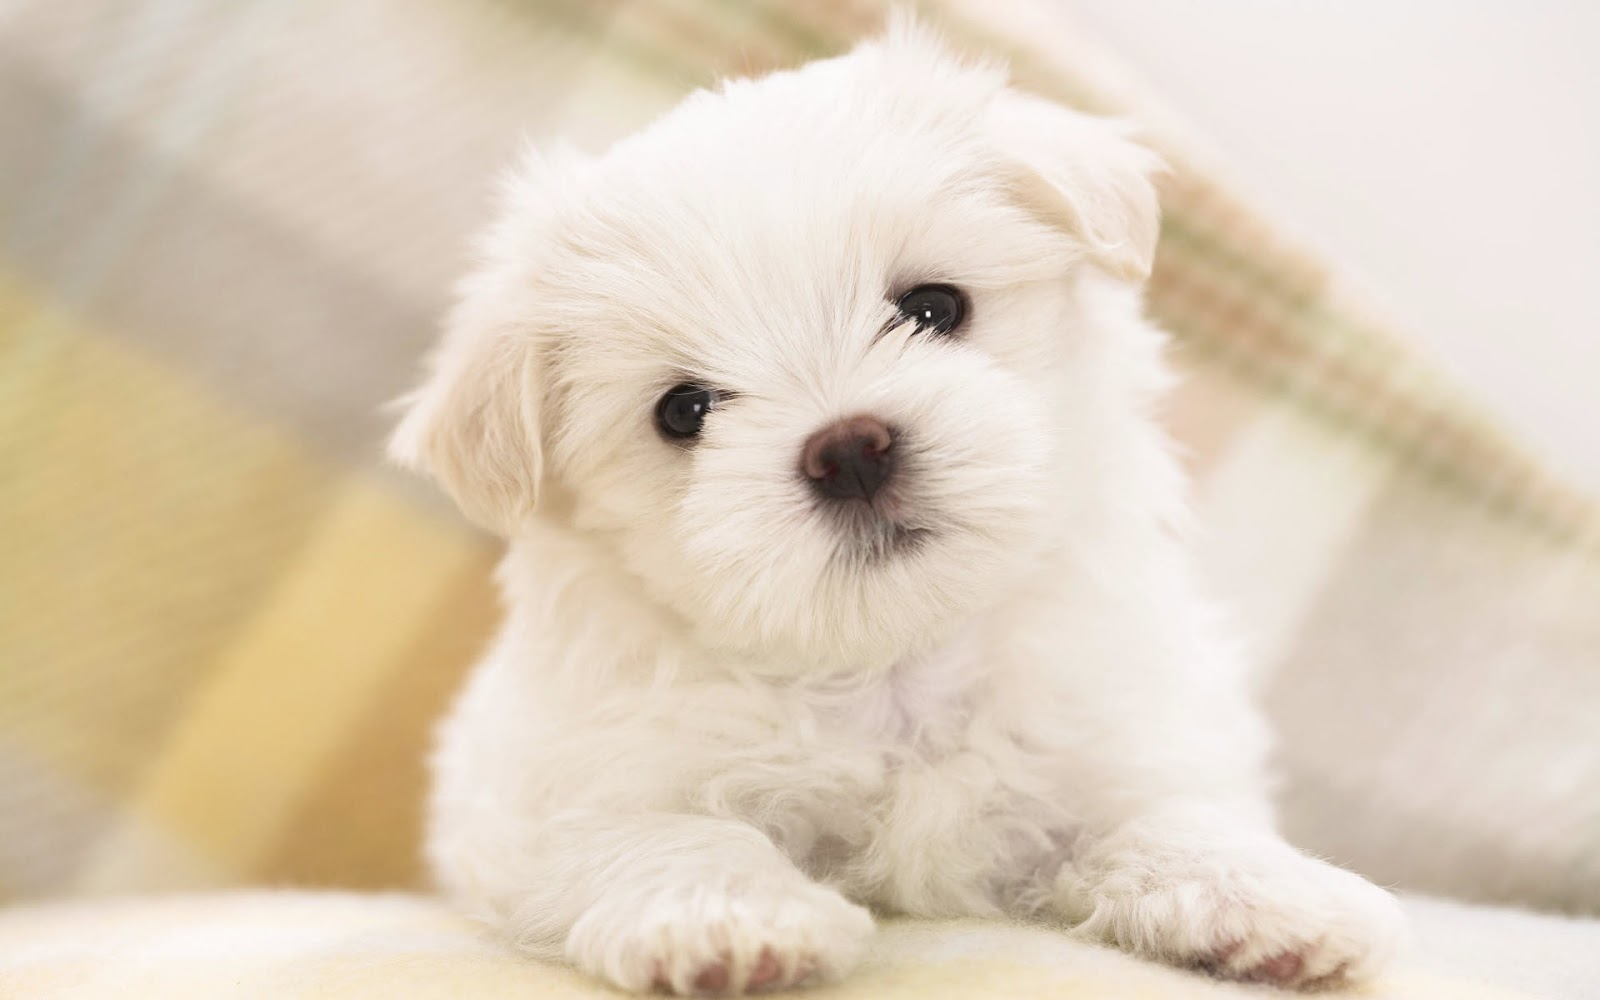 cute puppy wallpapers phone